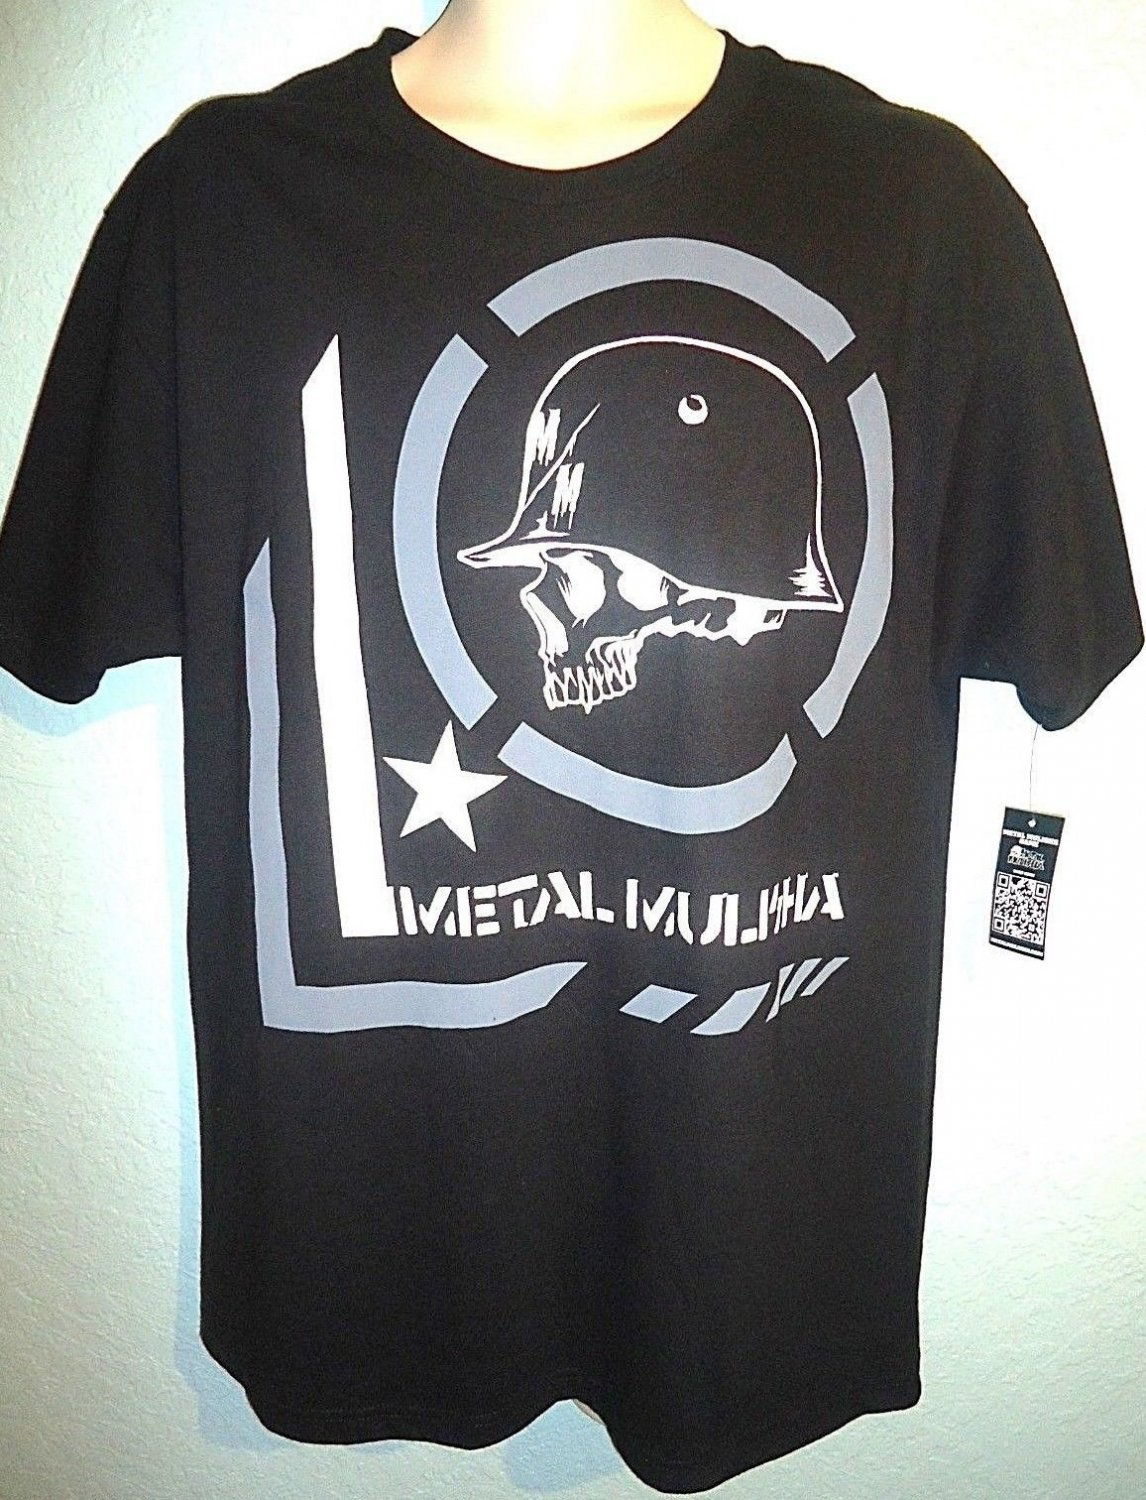 METAL MULISHA - LARGE - BLACK - BIKER - ERA - TEE - NEW - MOTORCYCLE - T-SHIRT